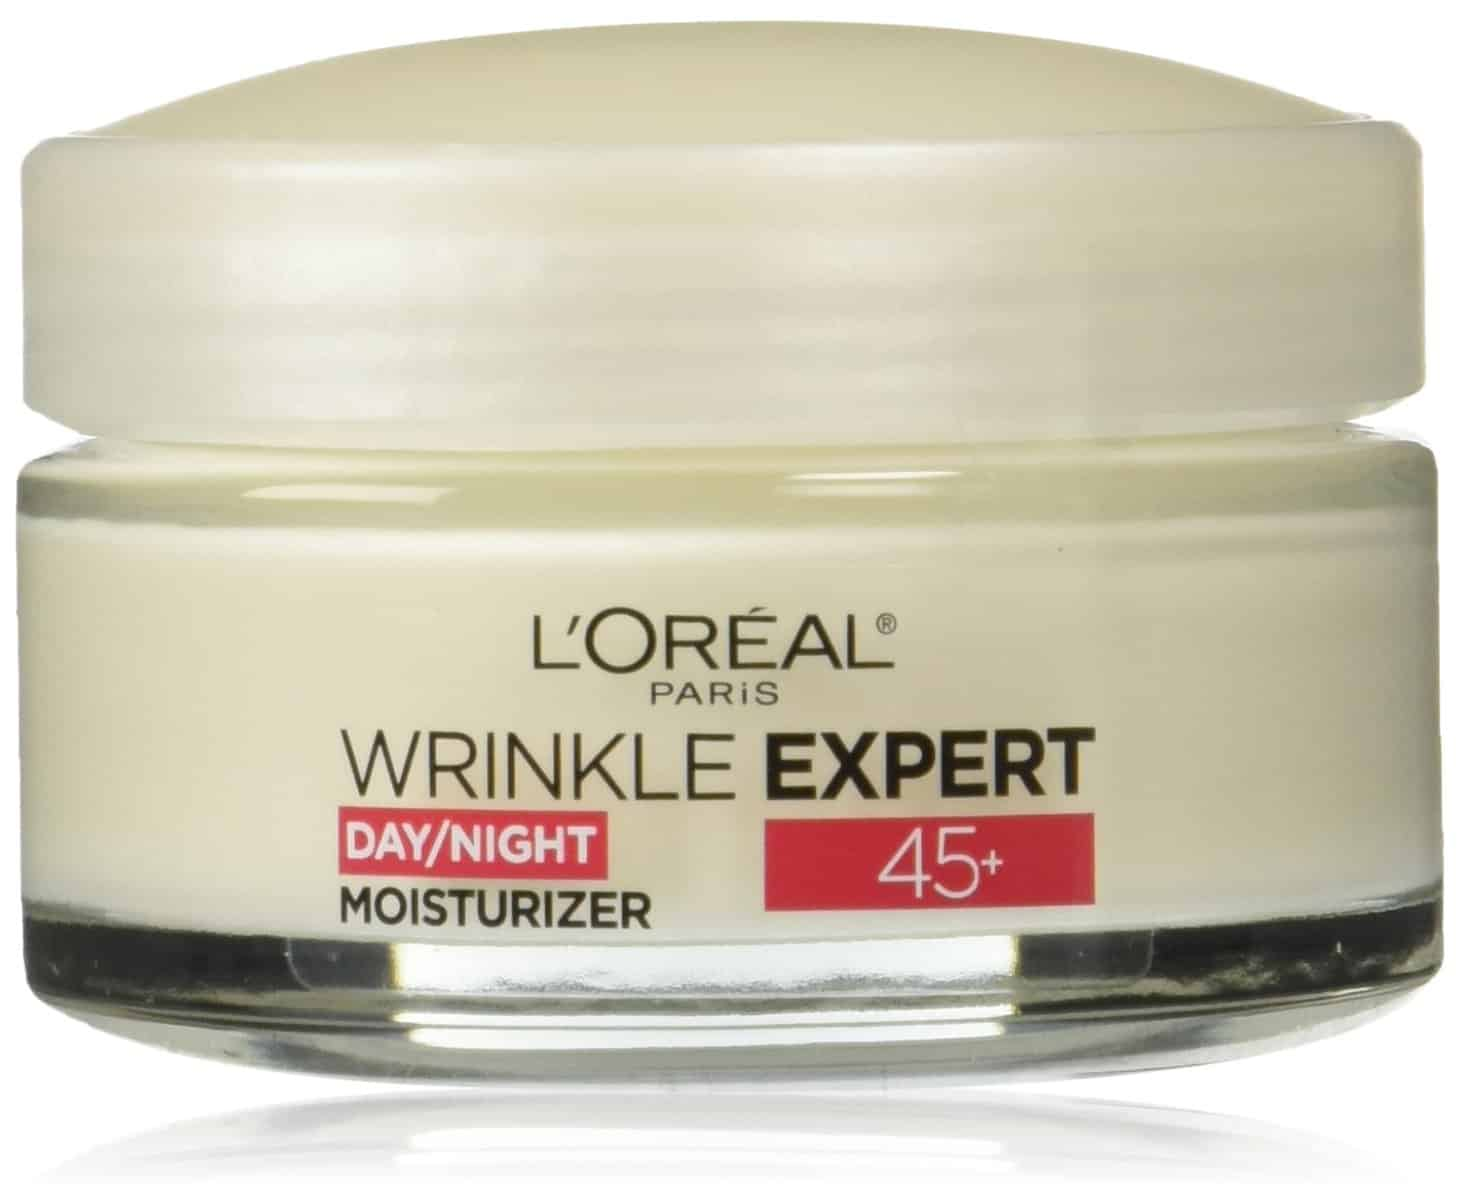 L'Oréal Paris Skincare Wrinkle Expert 45+ Anti-Aging Face Moisturizer with Retino-Peptide